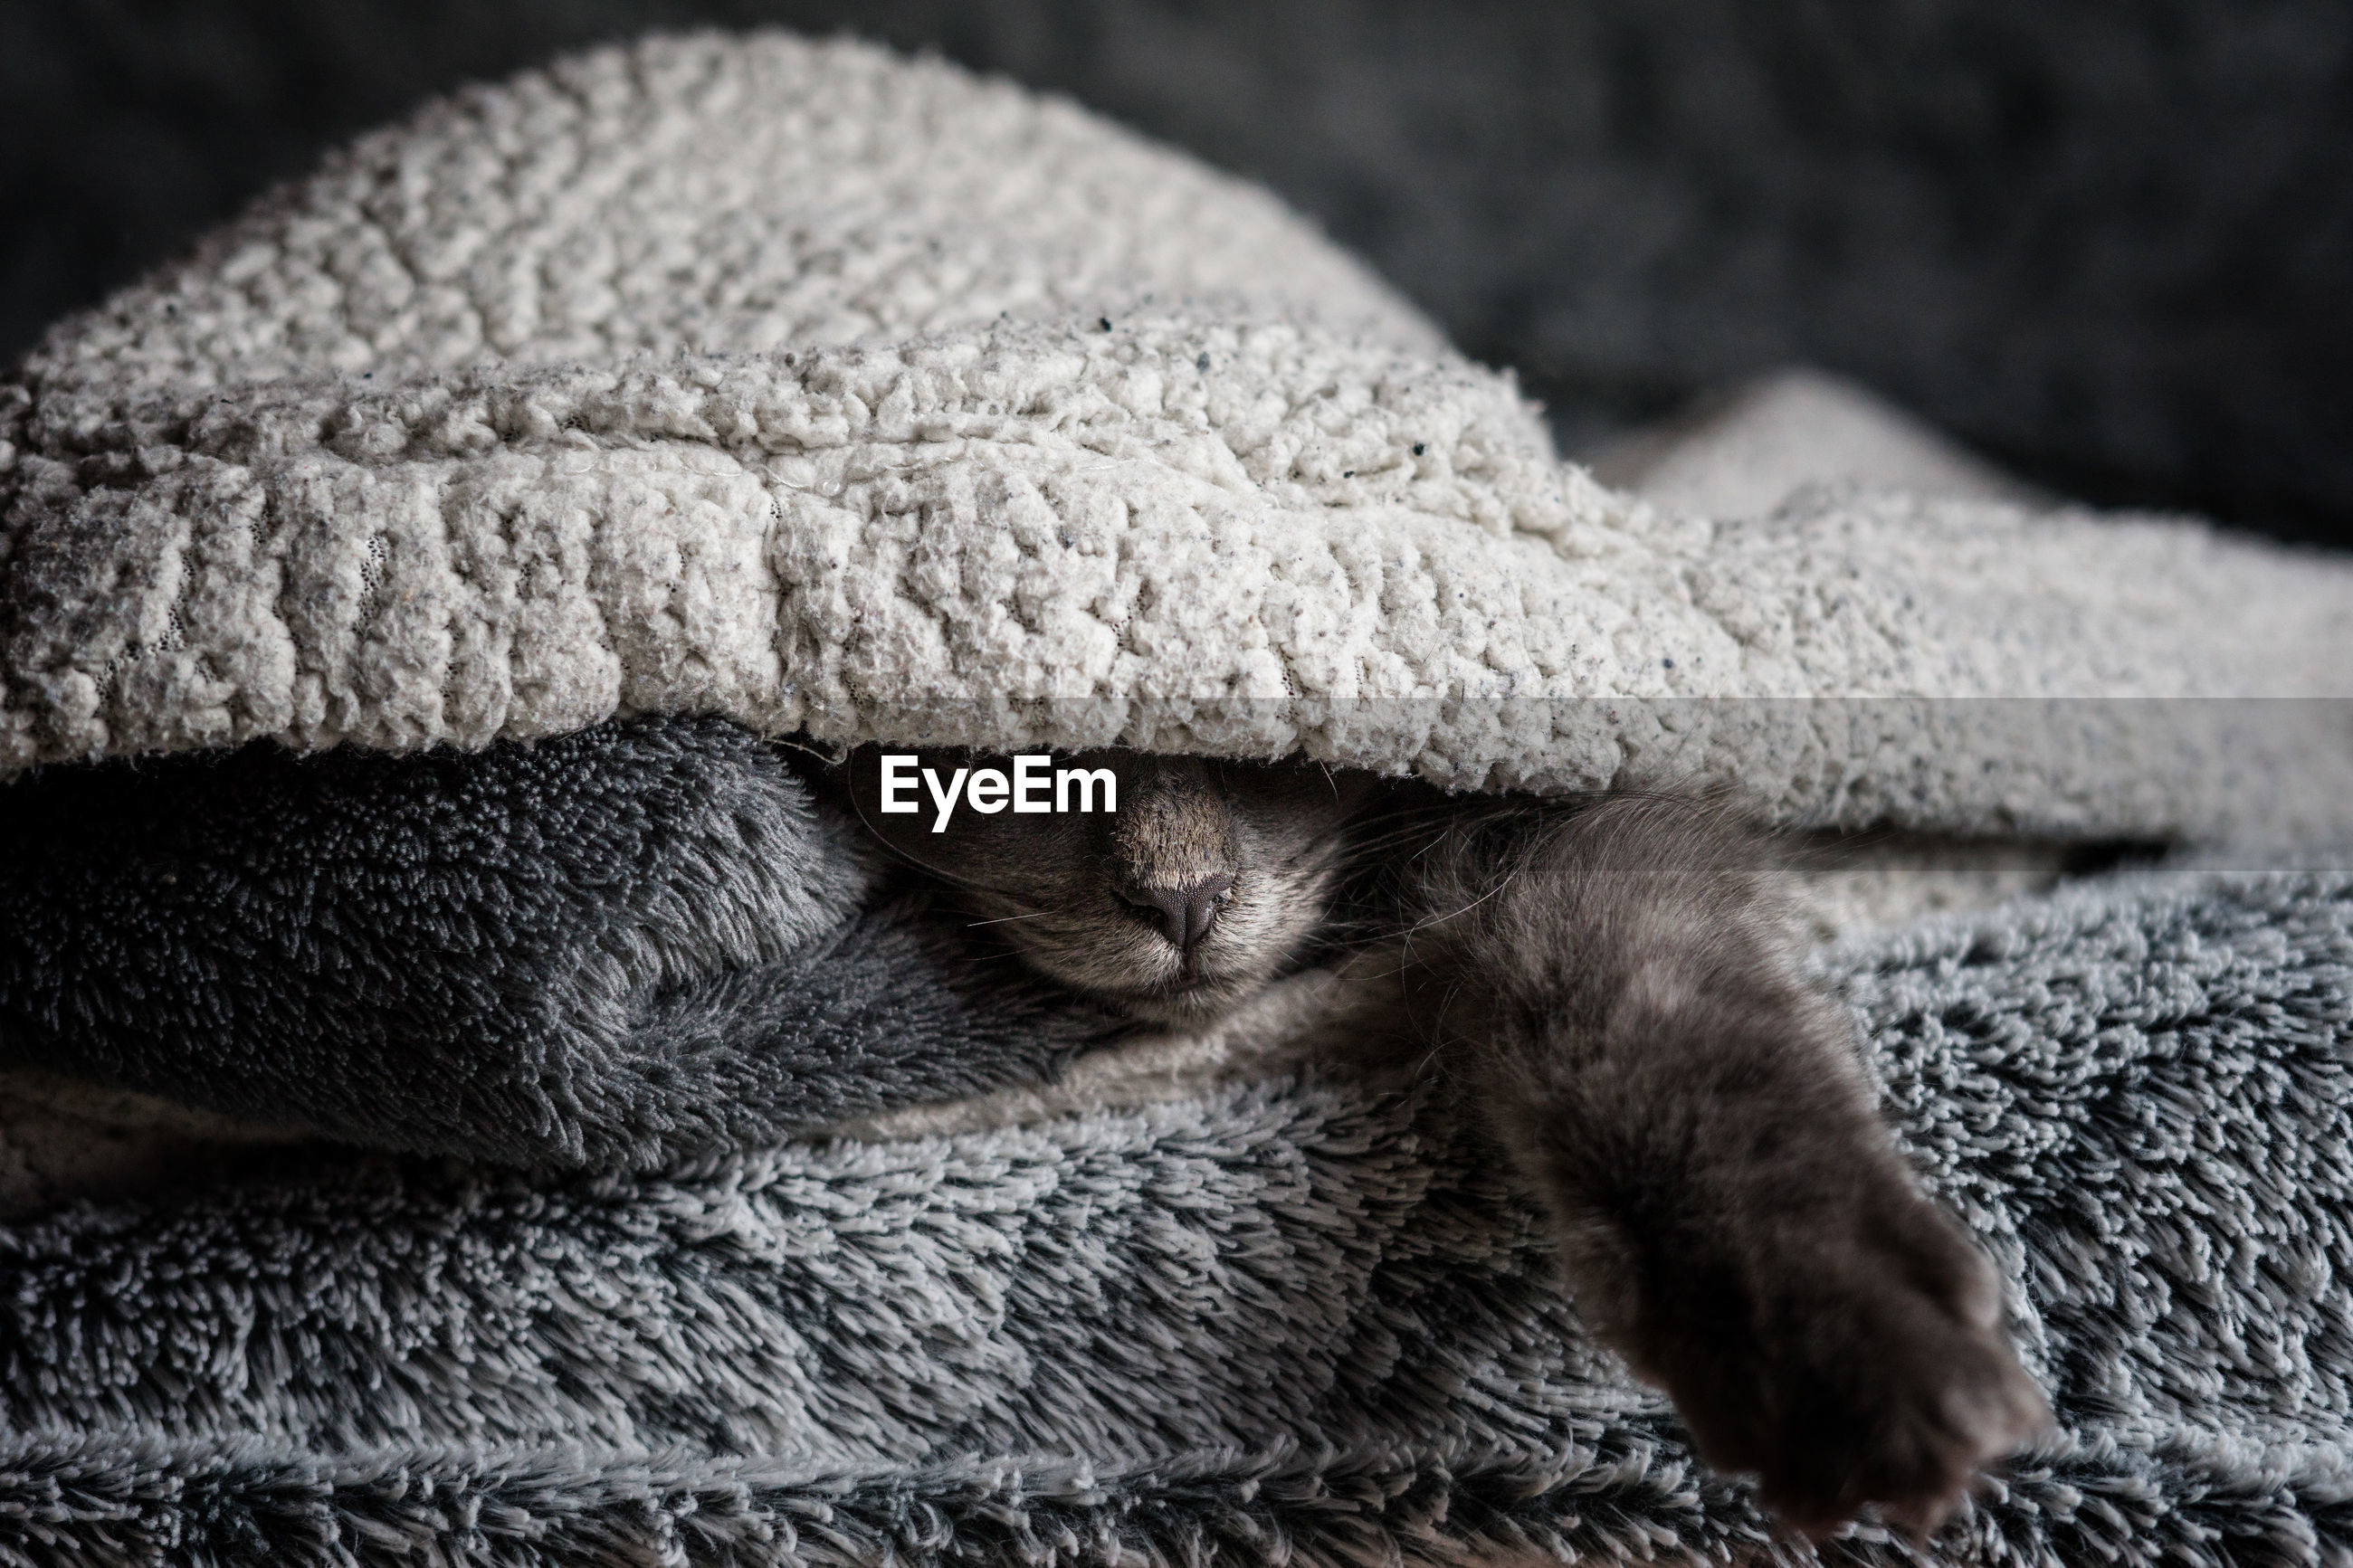 Close-up of a cat resting under blanket